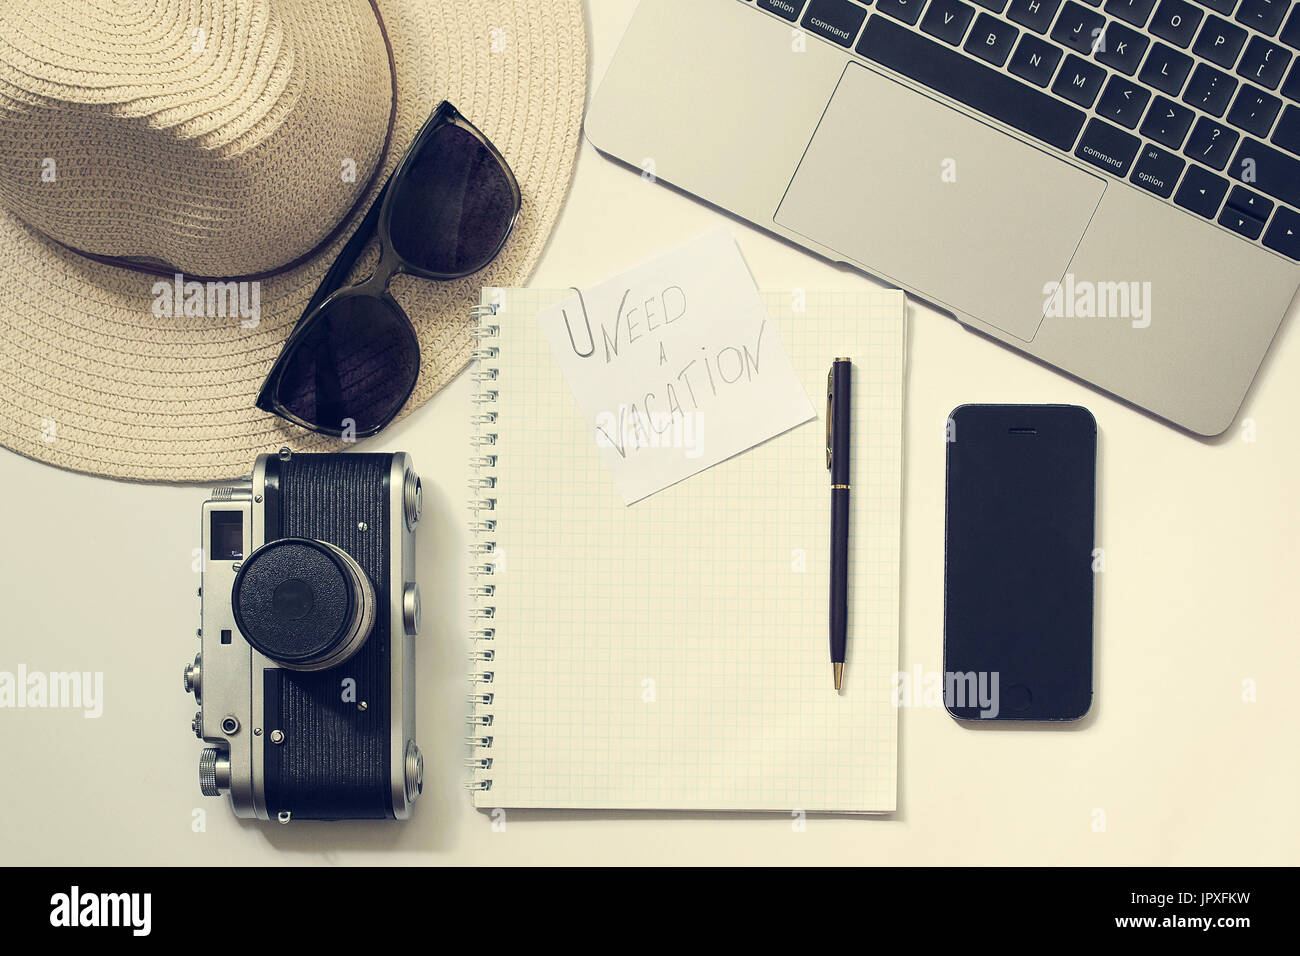 Thoughts about vacation workplace. Weekend mood. Blogger, writer or freelancer desk with laptop, open notebook, phone, pen, hat, old camera, glasses - Stock Image